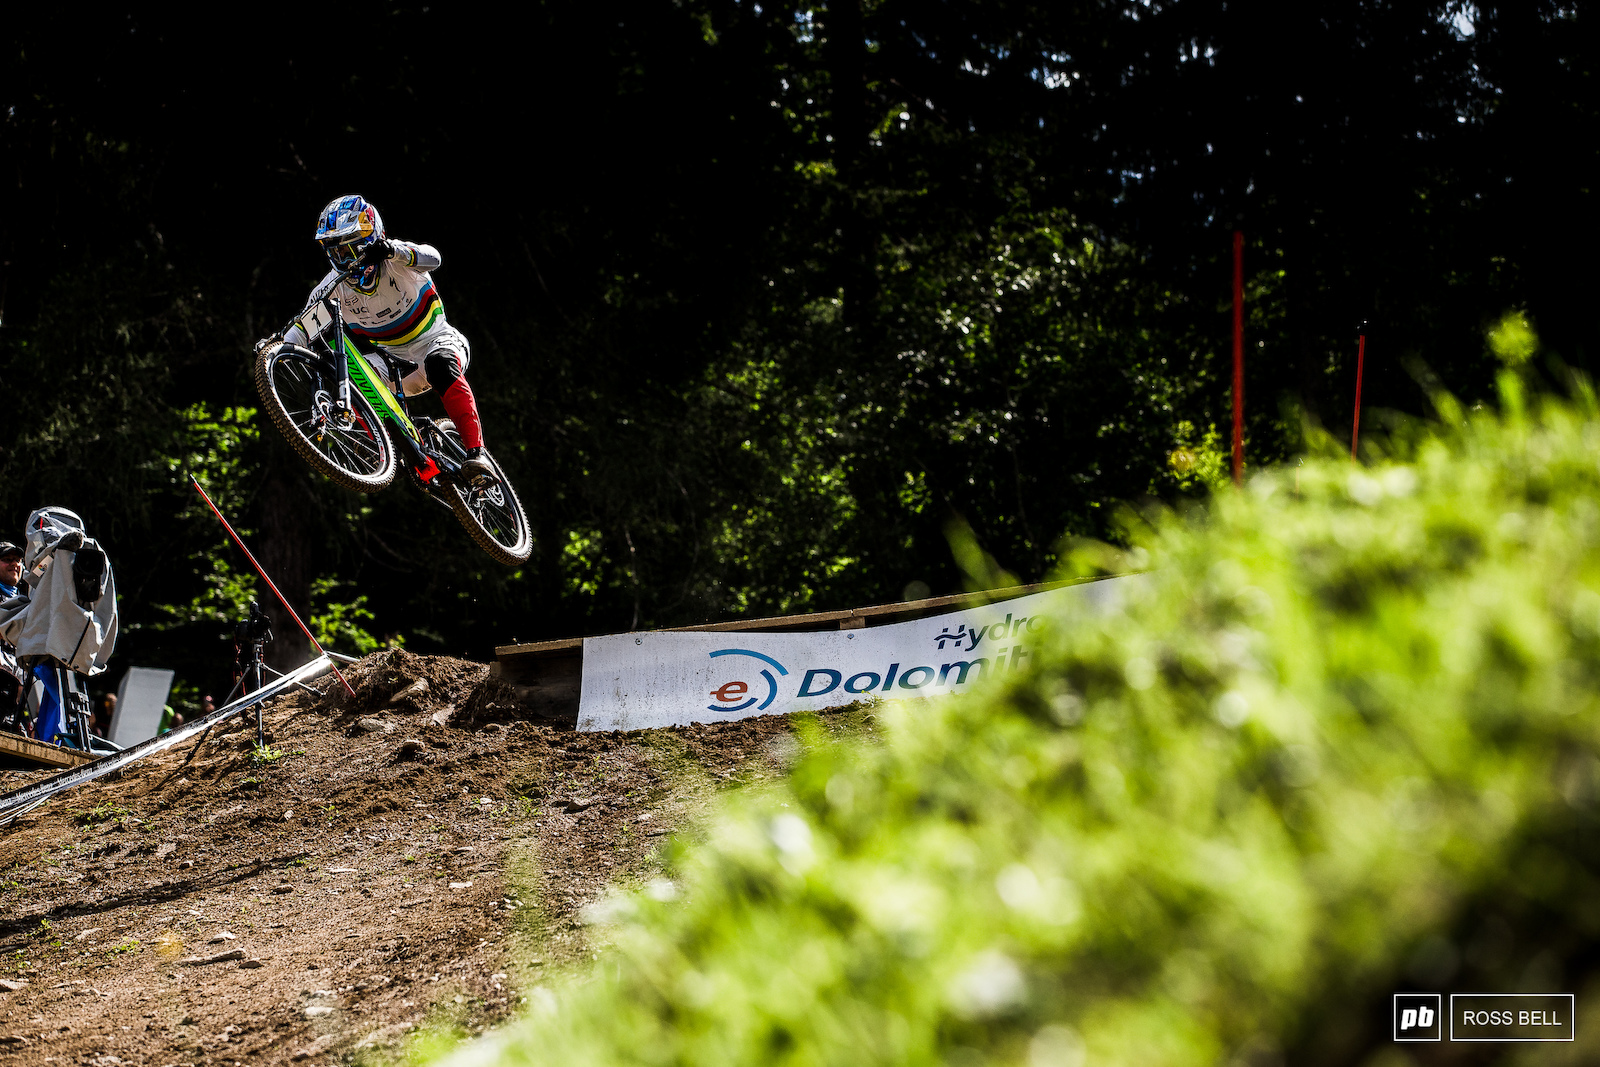 Loic Bruni launches out the woods and into the hot seat only kicked of the top spot by Greenland.